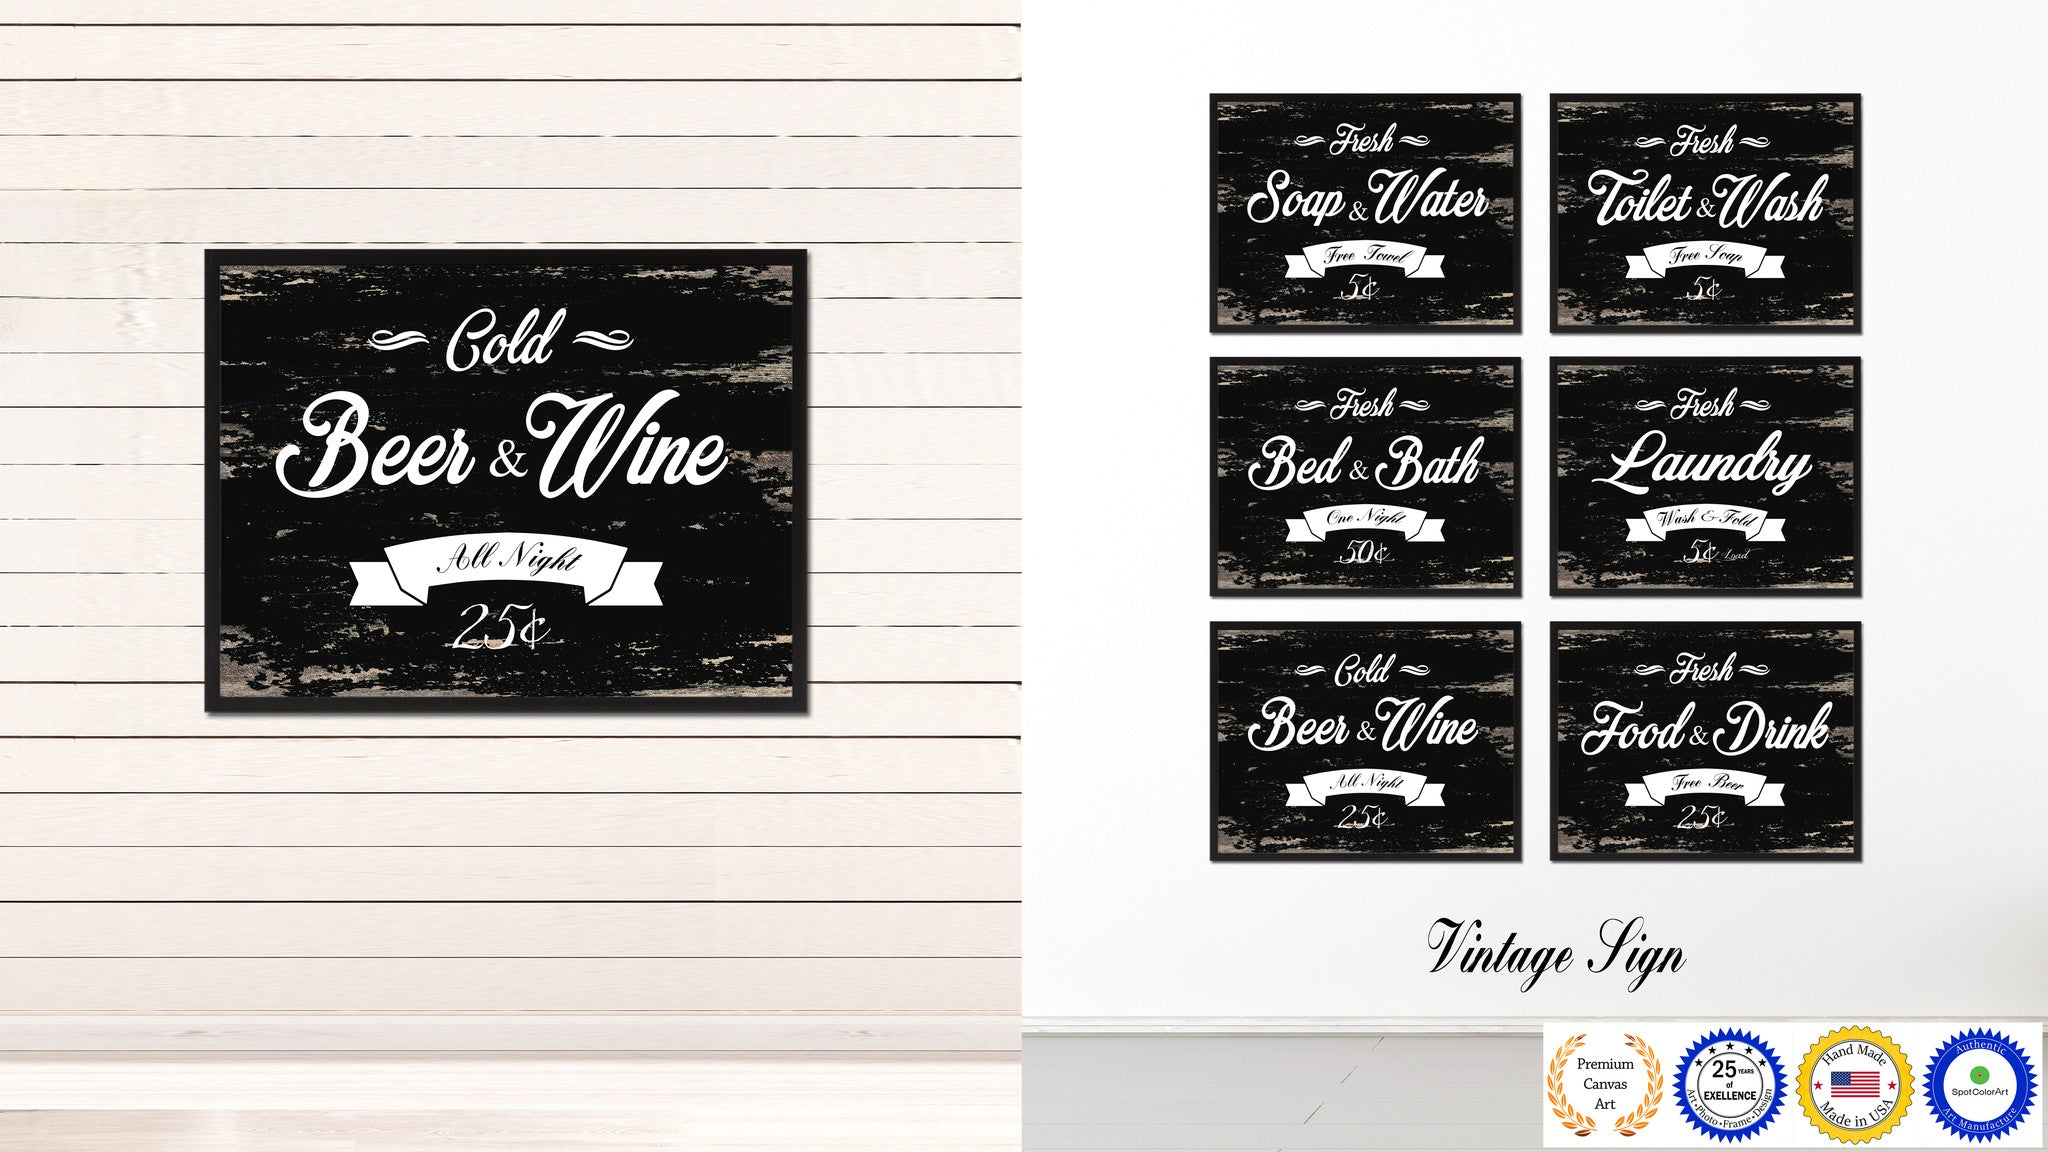 Fresh Beer & Wine Vintage Sign Home Decor Wall Art Gift Ideas ...